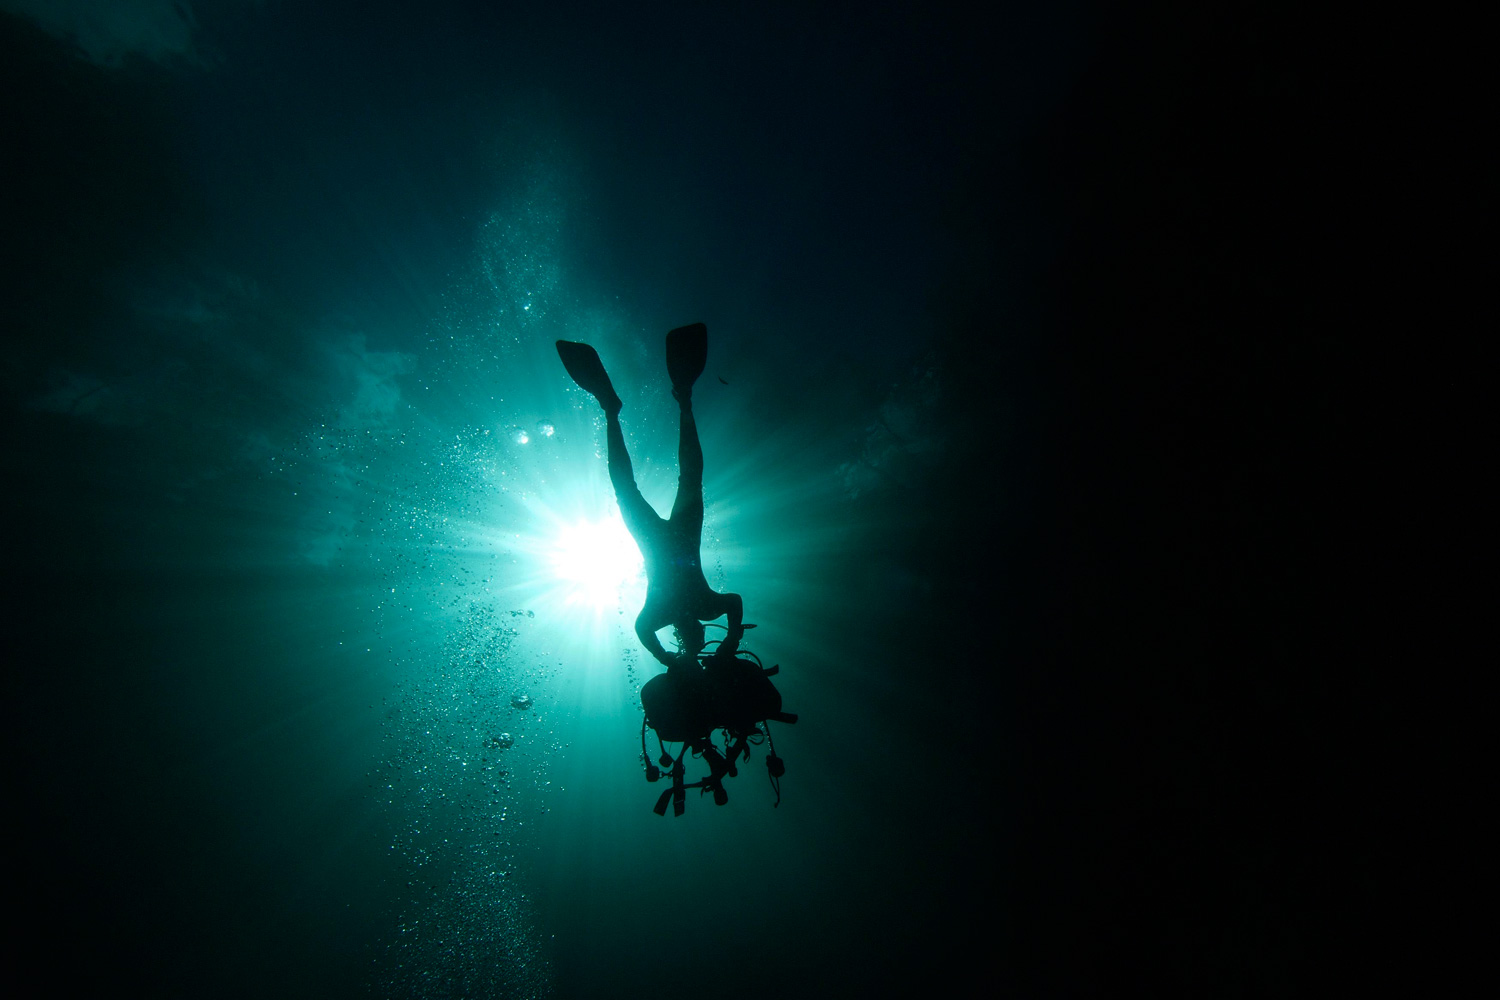 January 24, 2012. A scuba diver removes his equipment as he prepares to exit La Cueva de los Peces (Cave of the Fish) along the coast of Playa Giron, near the Bay of Pigs, 160 km (100 miles) south-east of Havana, in central Cuba.